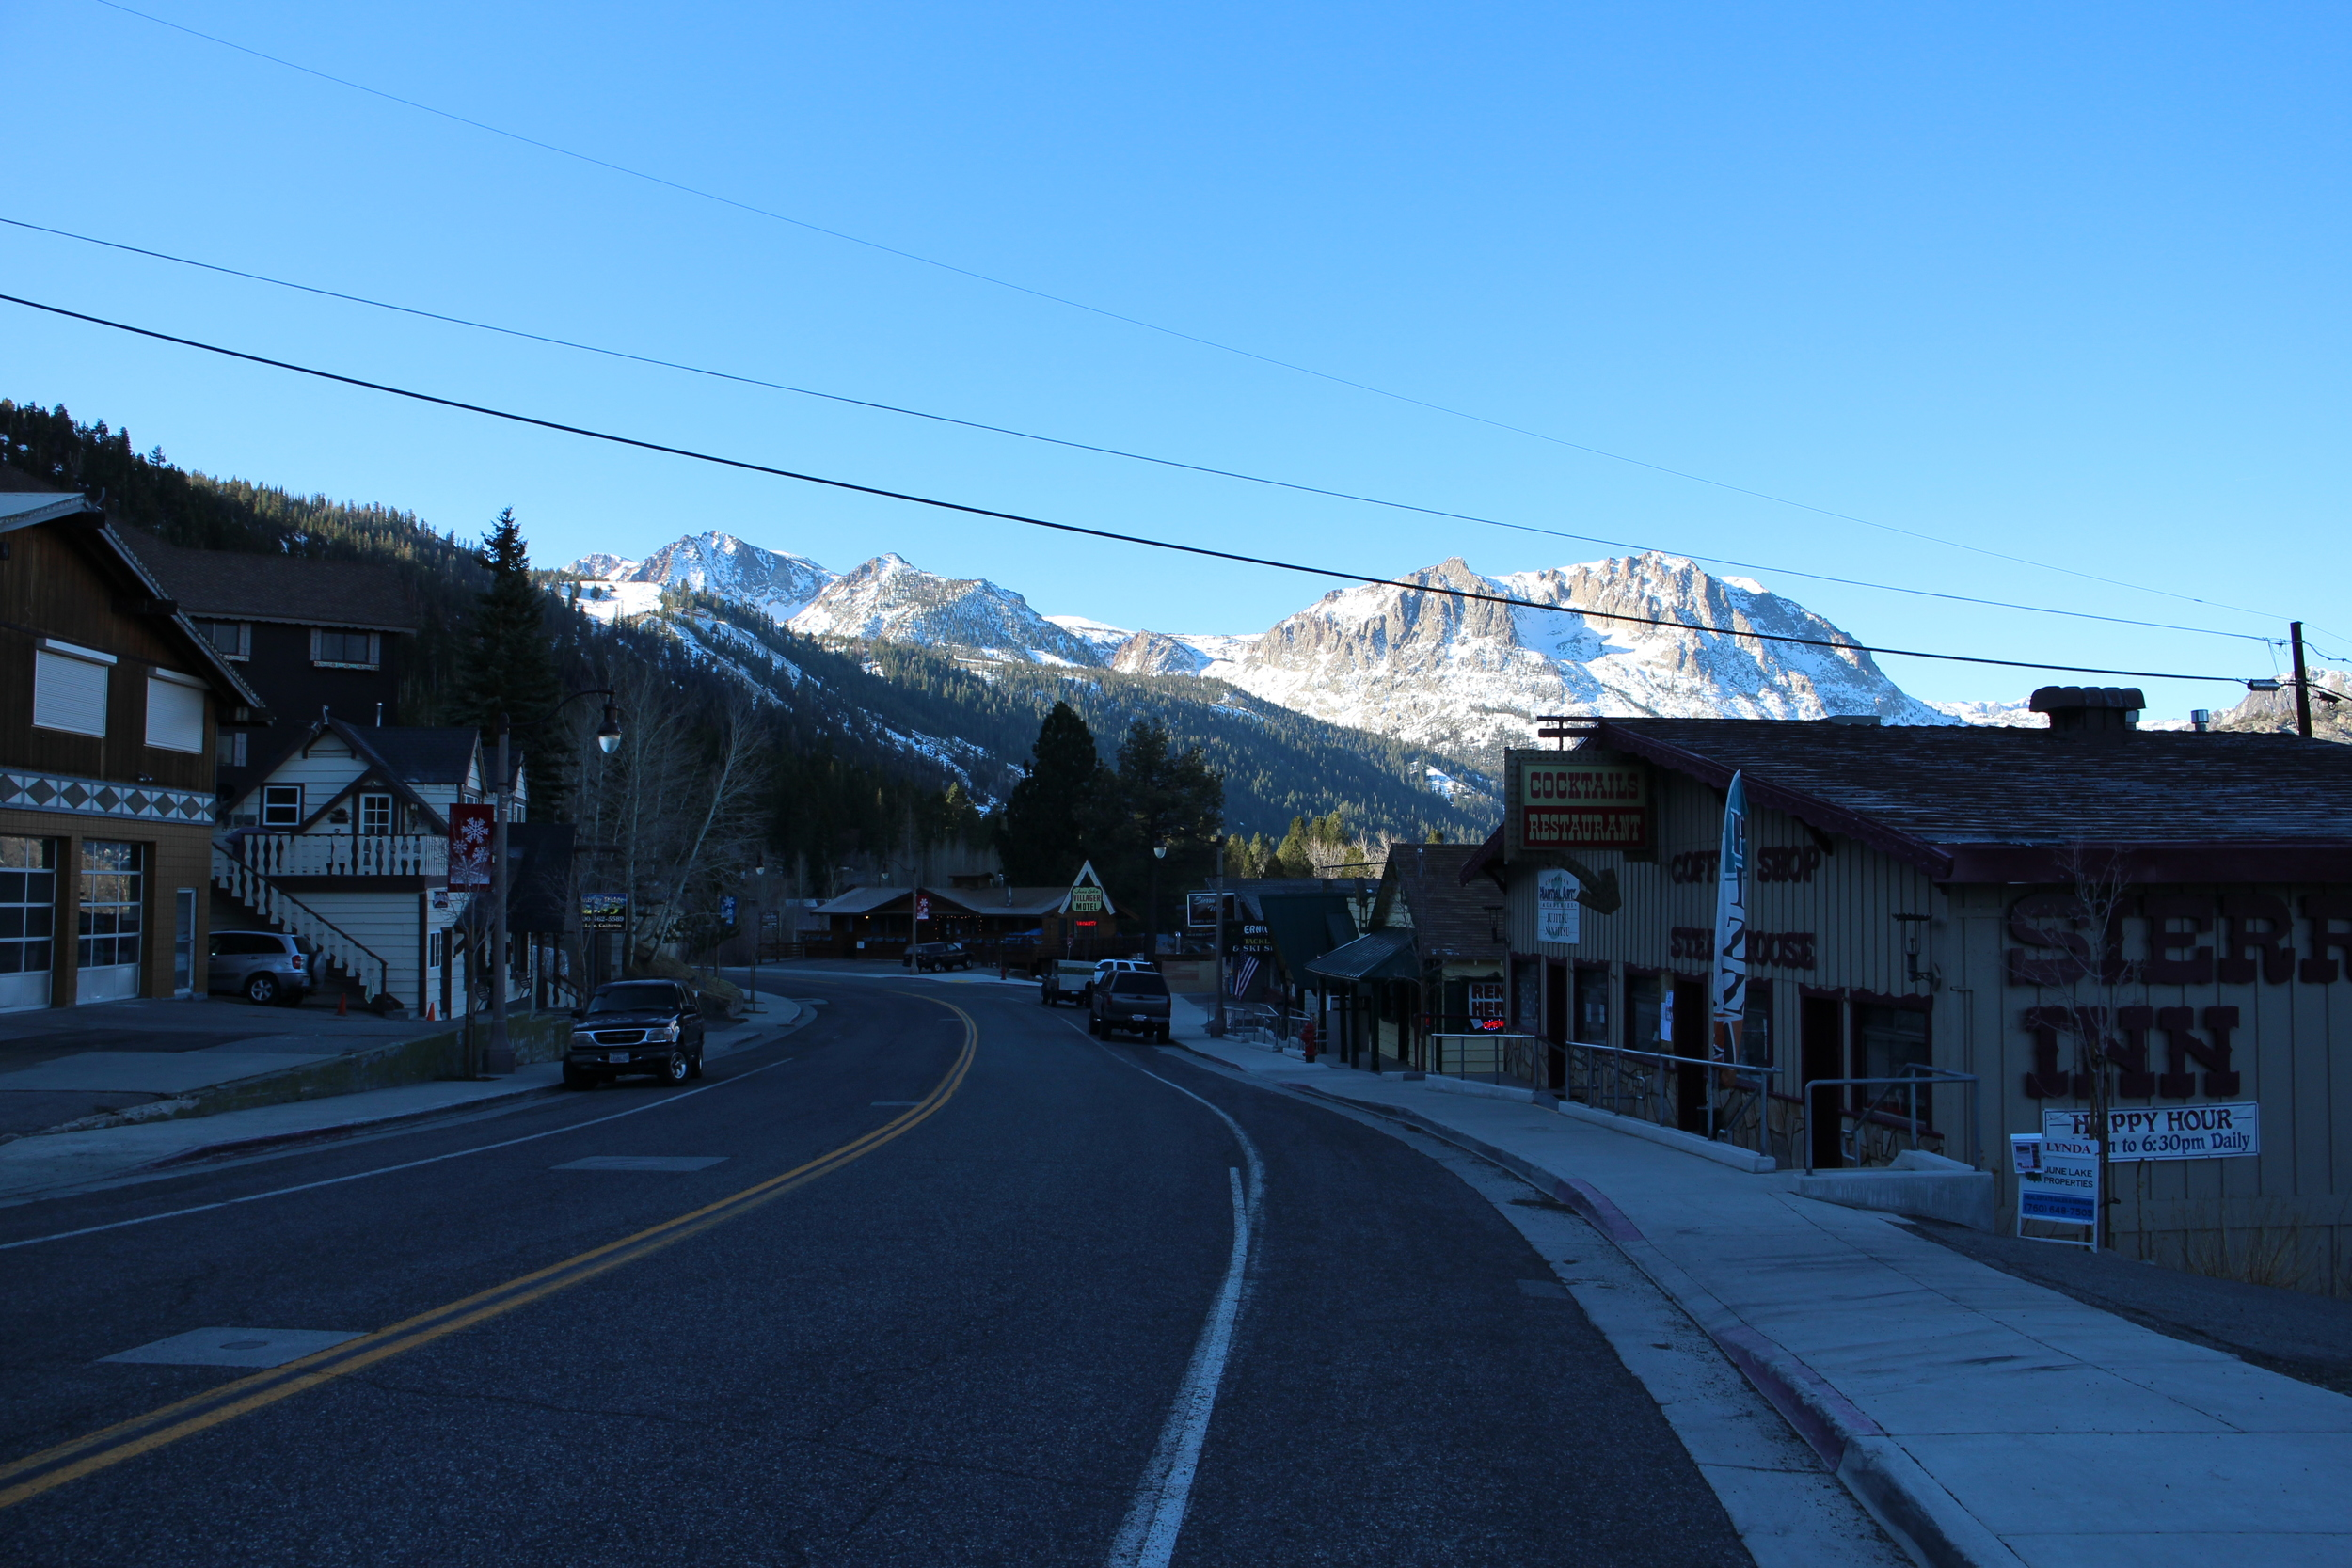 The small ski town of June Lake